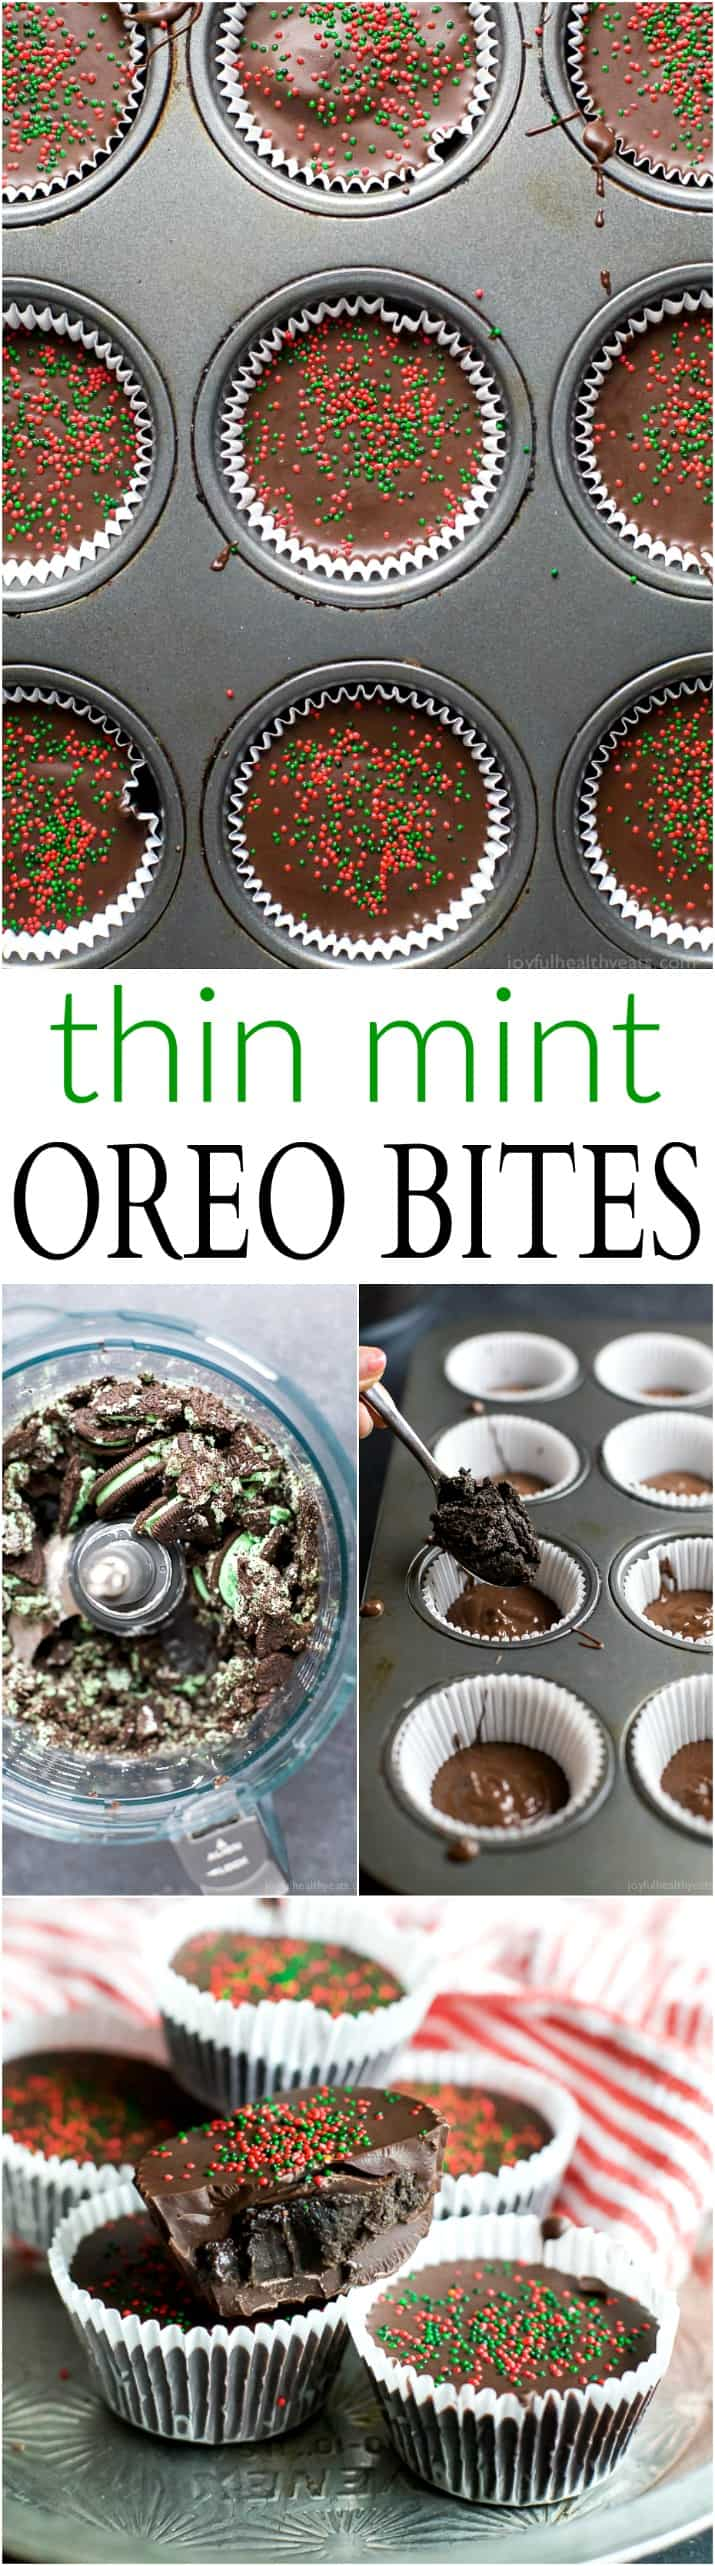 THIN MINT OREO BITES, an easy 3 ingredient Christmas treat that will be a crowd favorite this Holiday Season! | joyfulhealthyeats.com